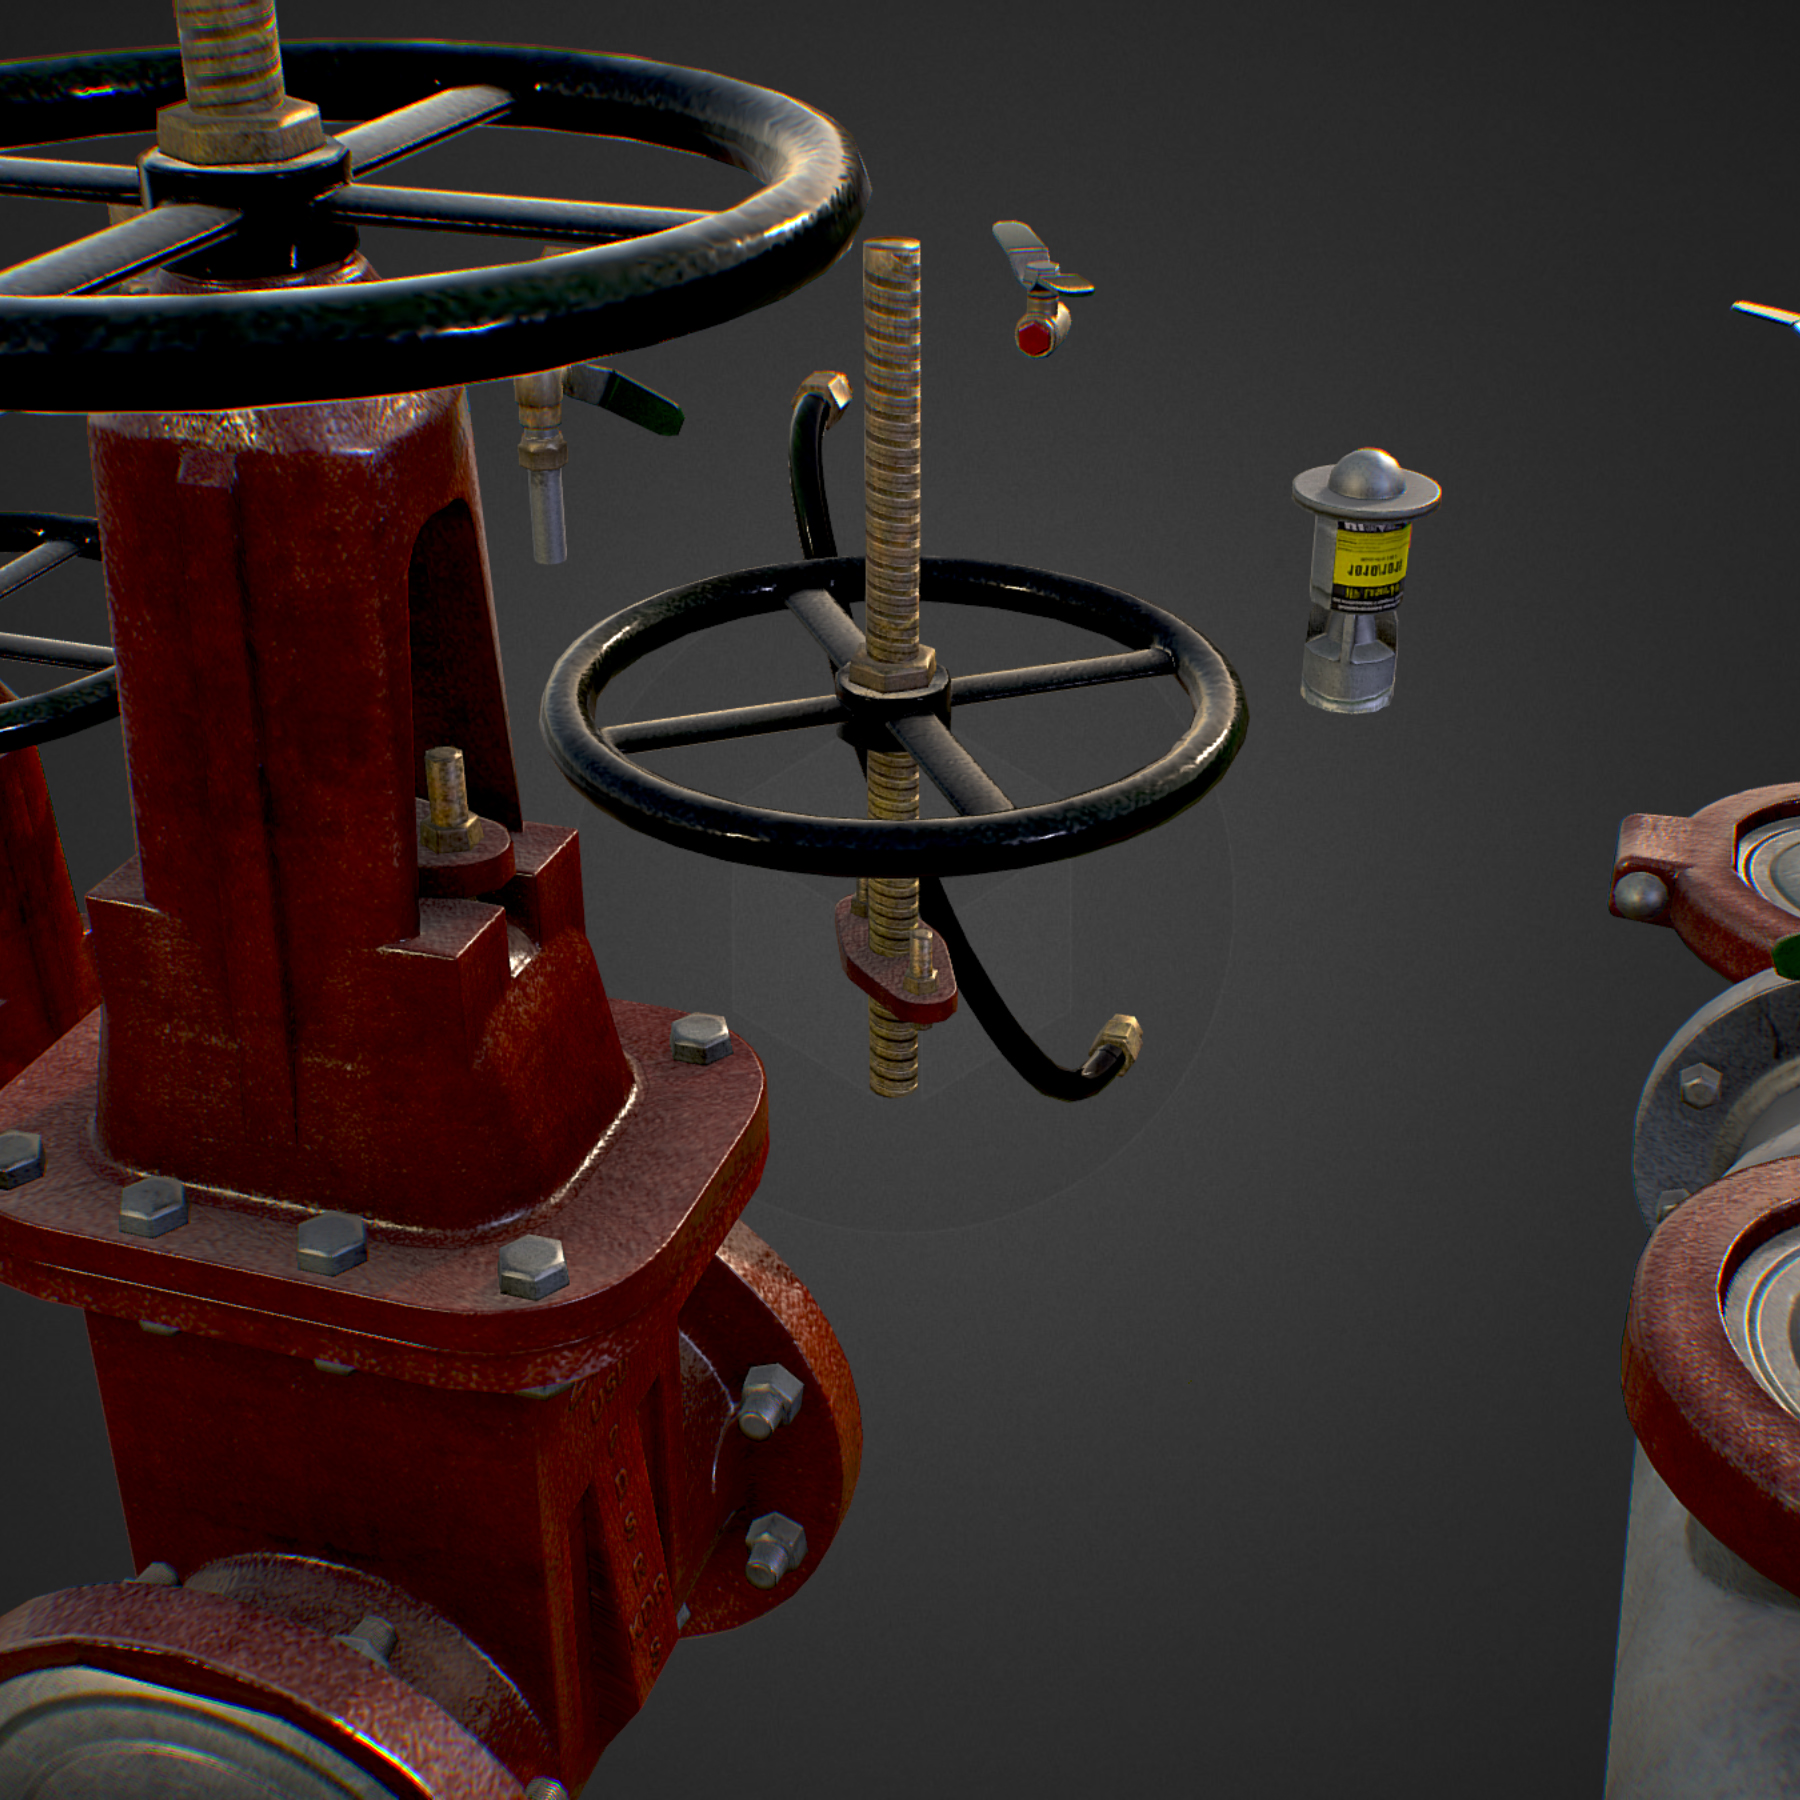 low poly game backflow water pipe constructor 3d model max  fbx ma mb tga targa icb vda vst pix obj 272478